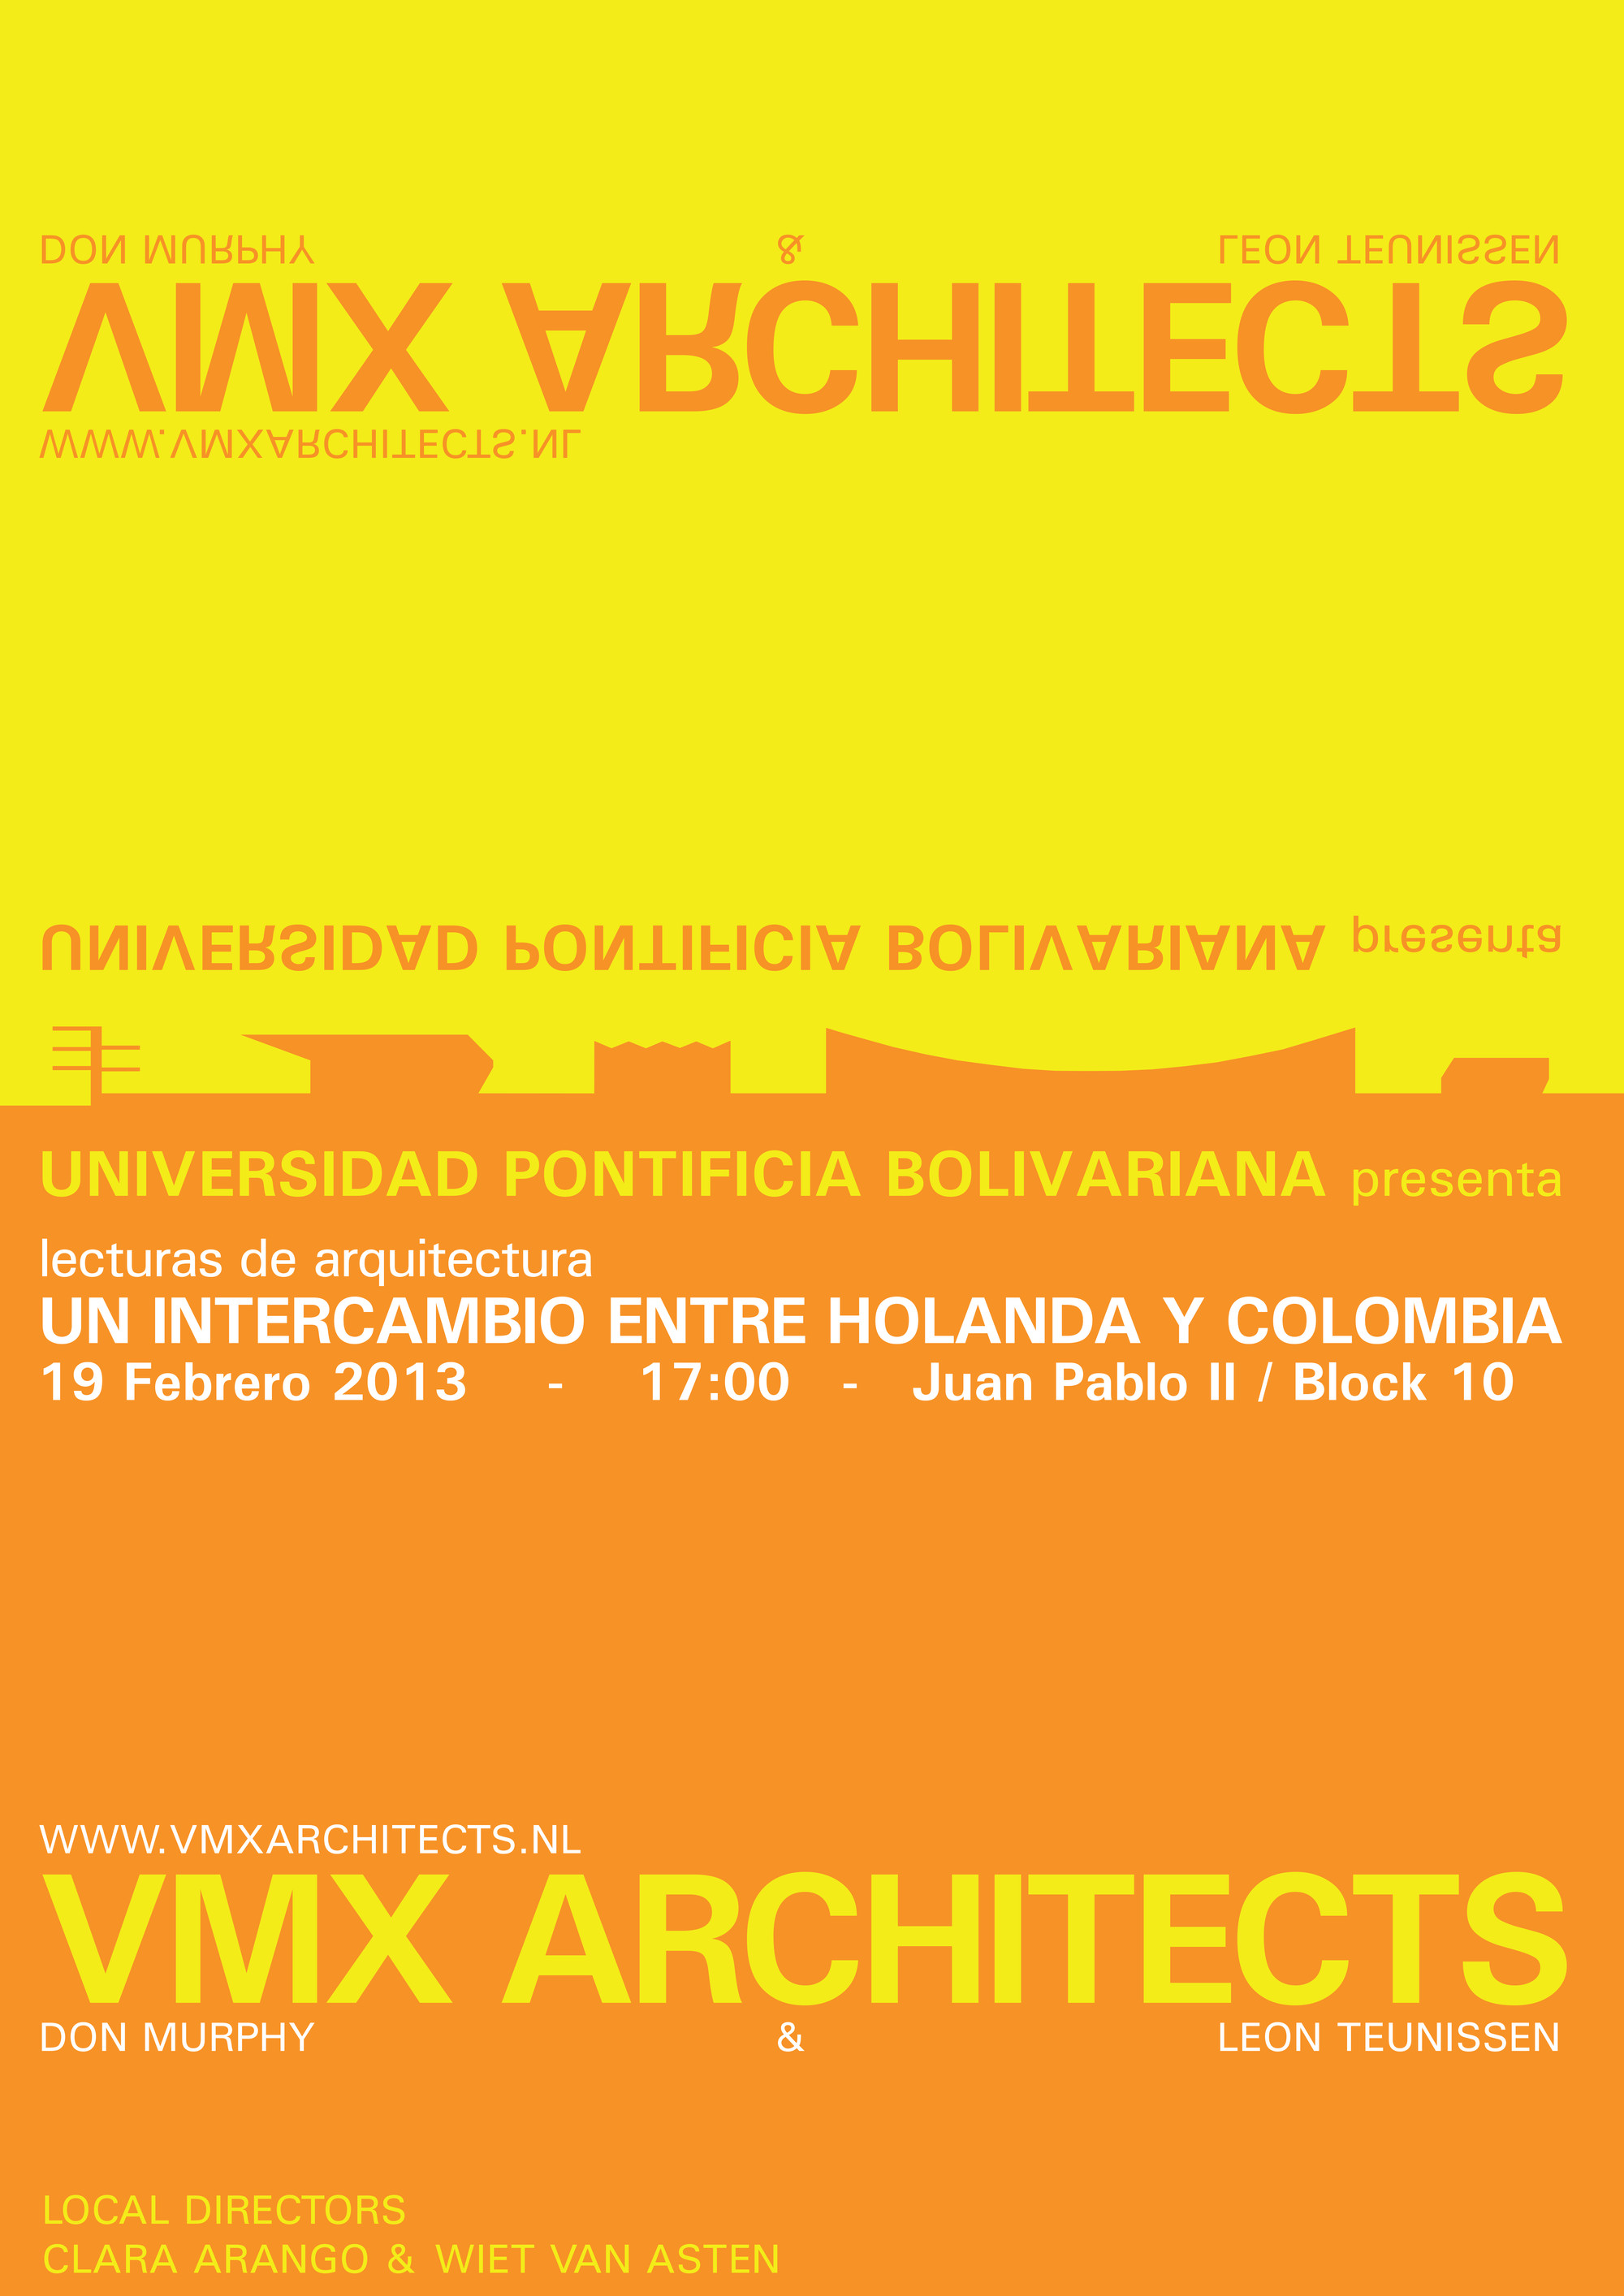 Cortesia de VMX Architects